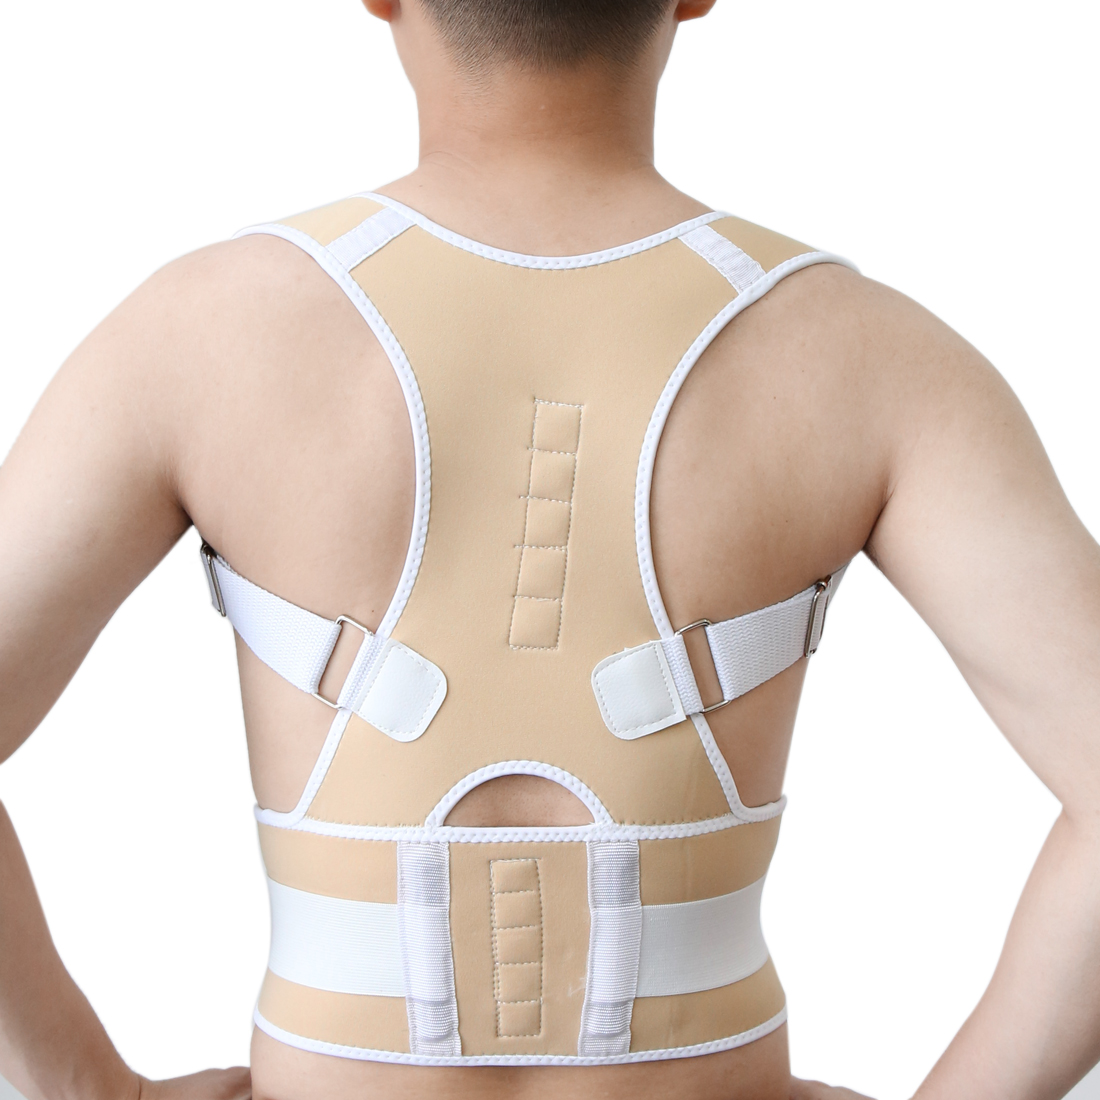 Fully Adjustable Brace Belt Band for Posture Correction Back Pain Support